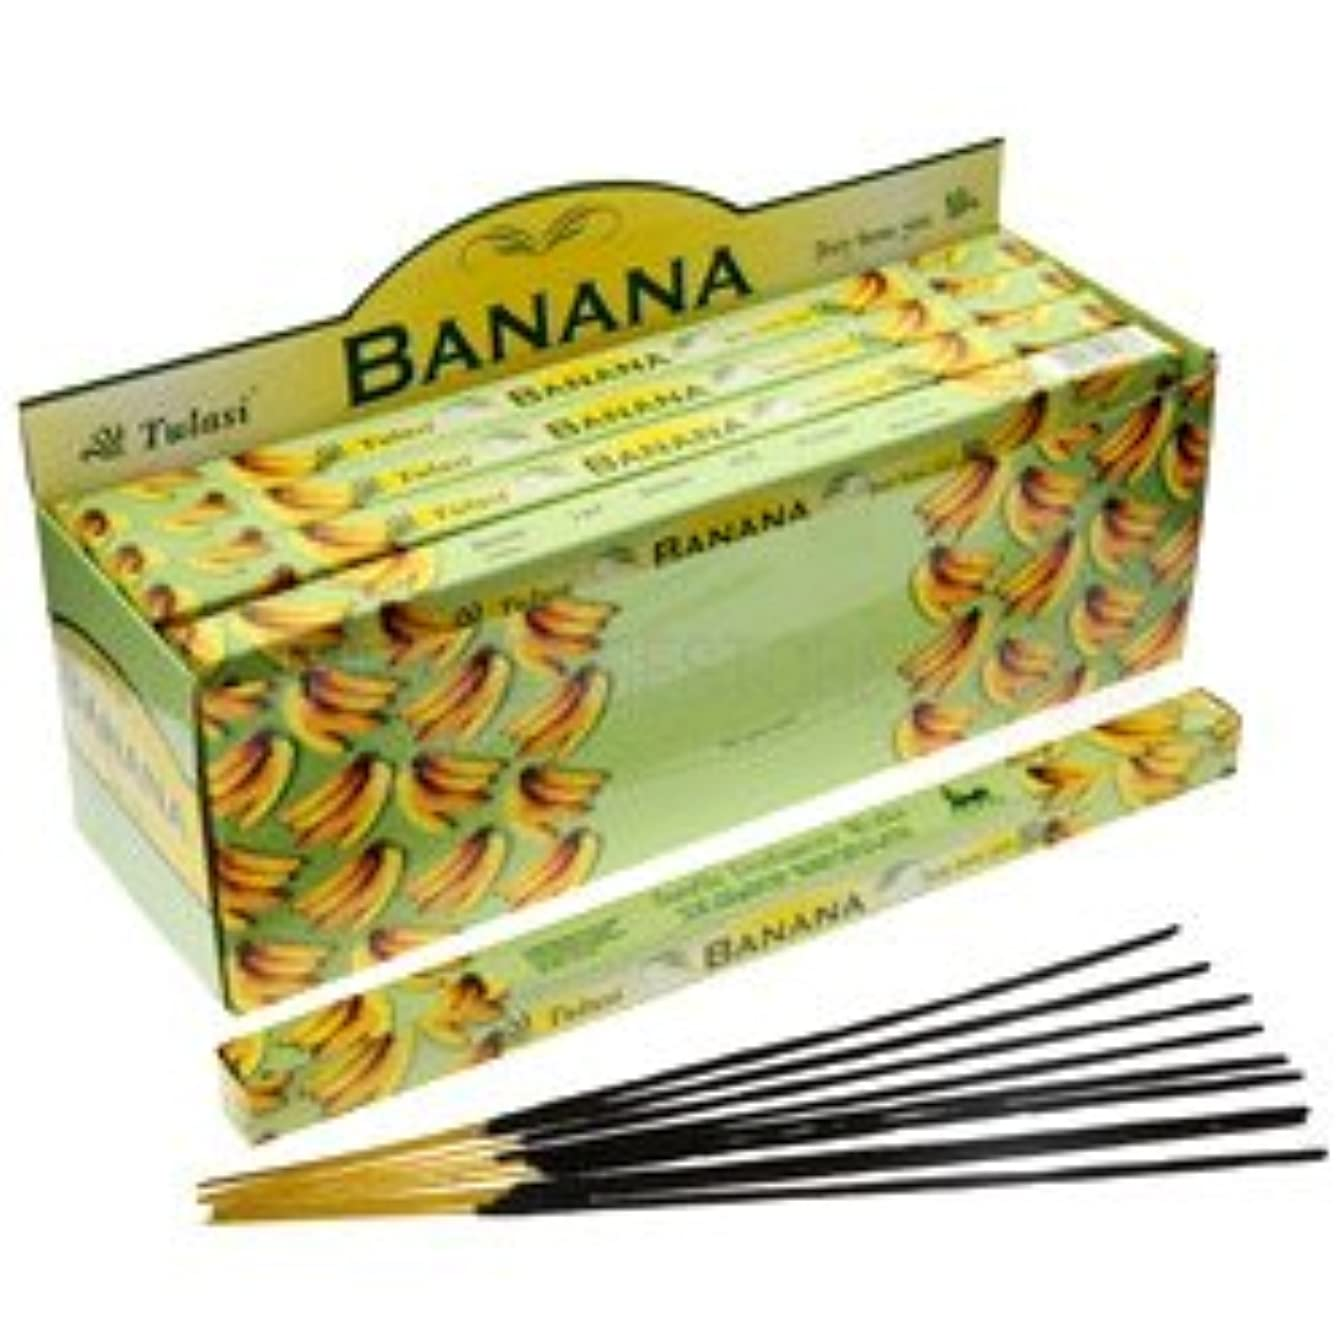 不変薄めるつぼみTulasi Banana Incense, 8 Sticks x 25 Packs